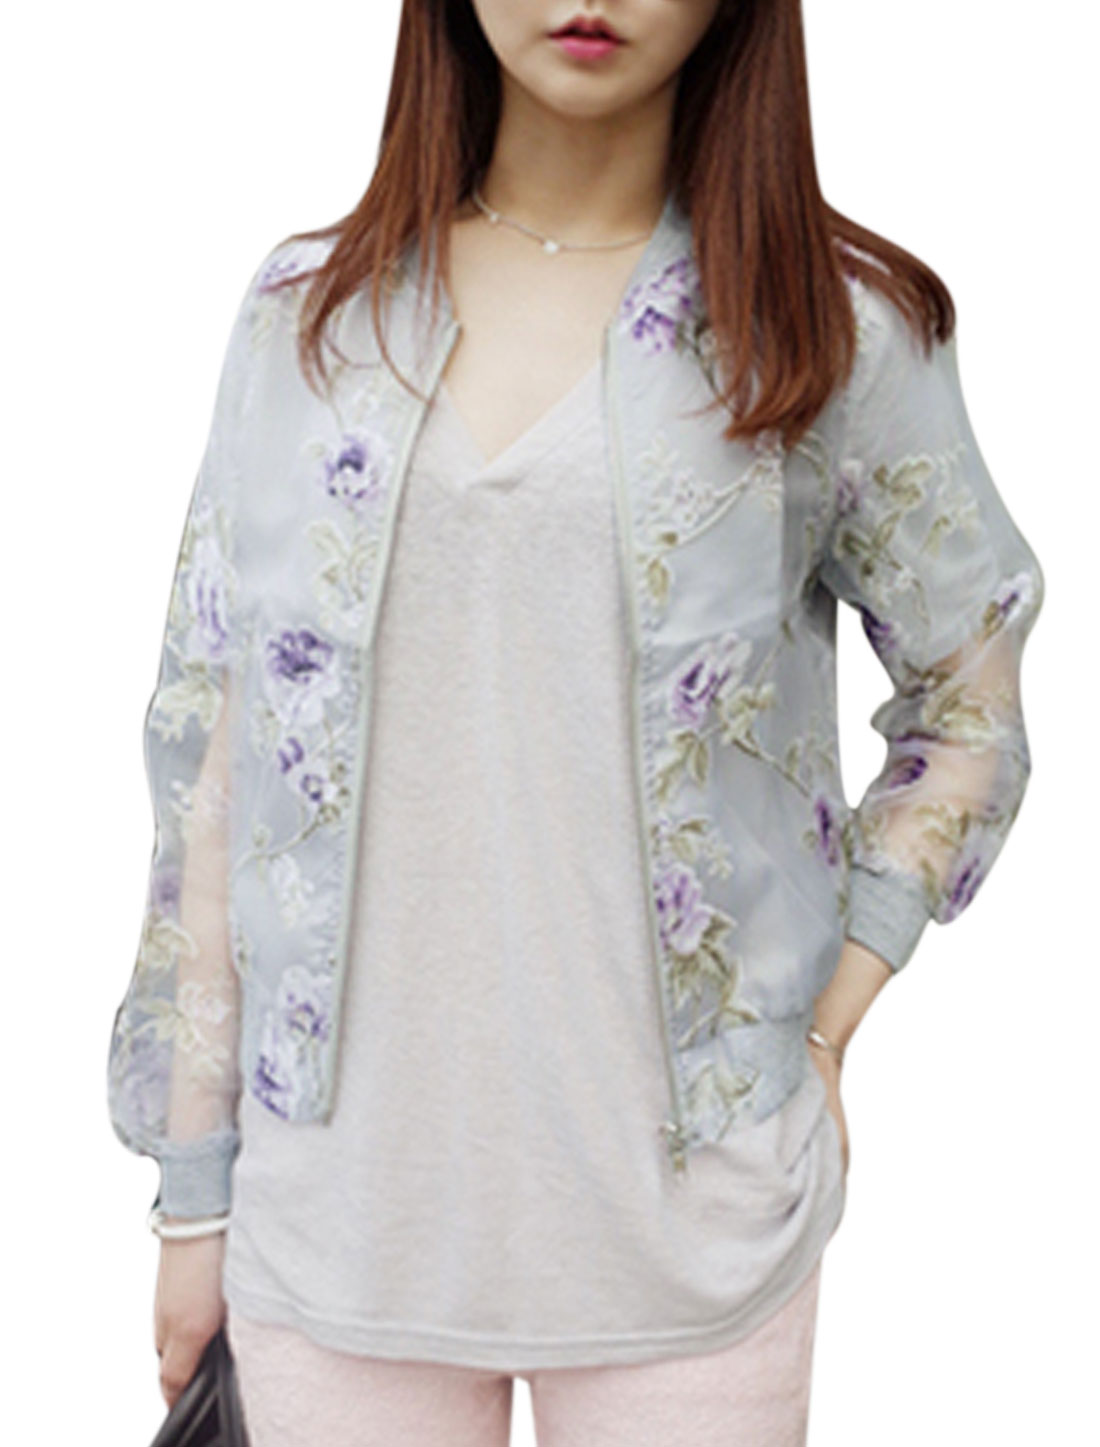 Lady Flower Pattern Ribbed Trim Semi Sheer Organza Jacket Purple Light Gray S